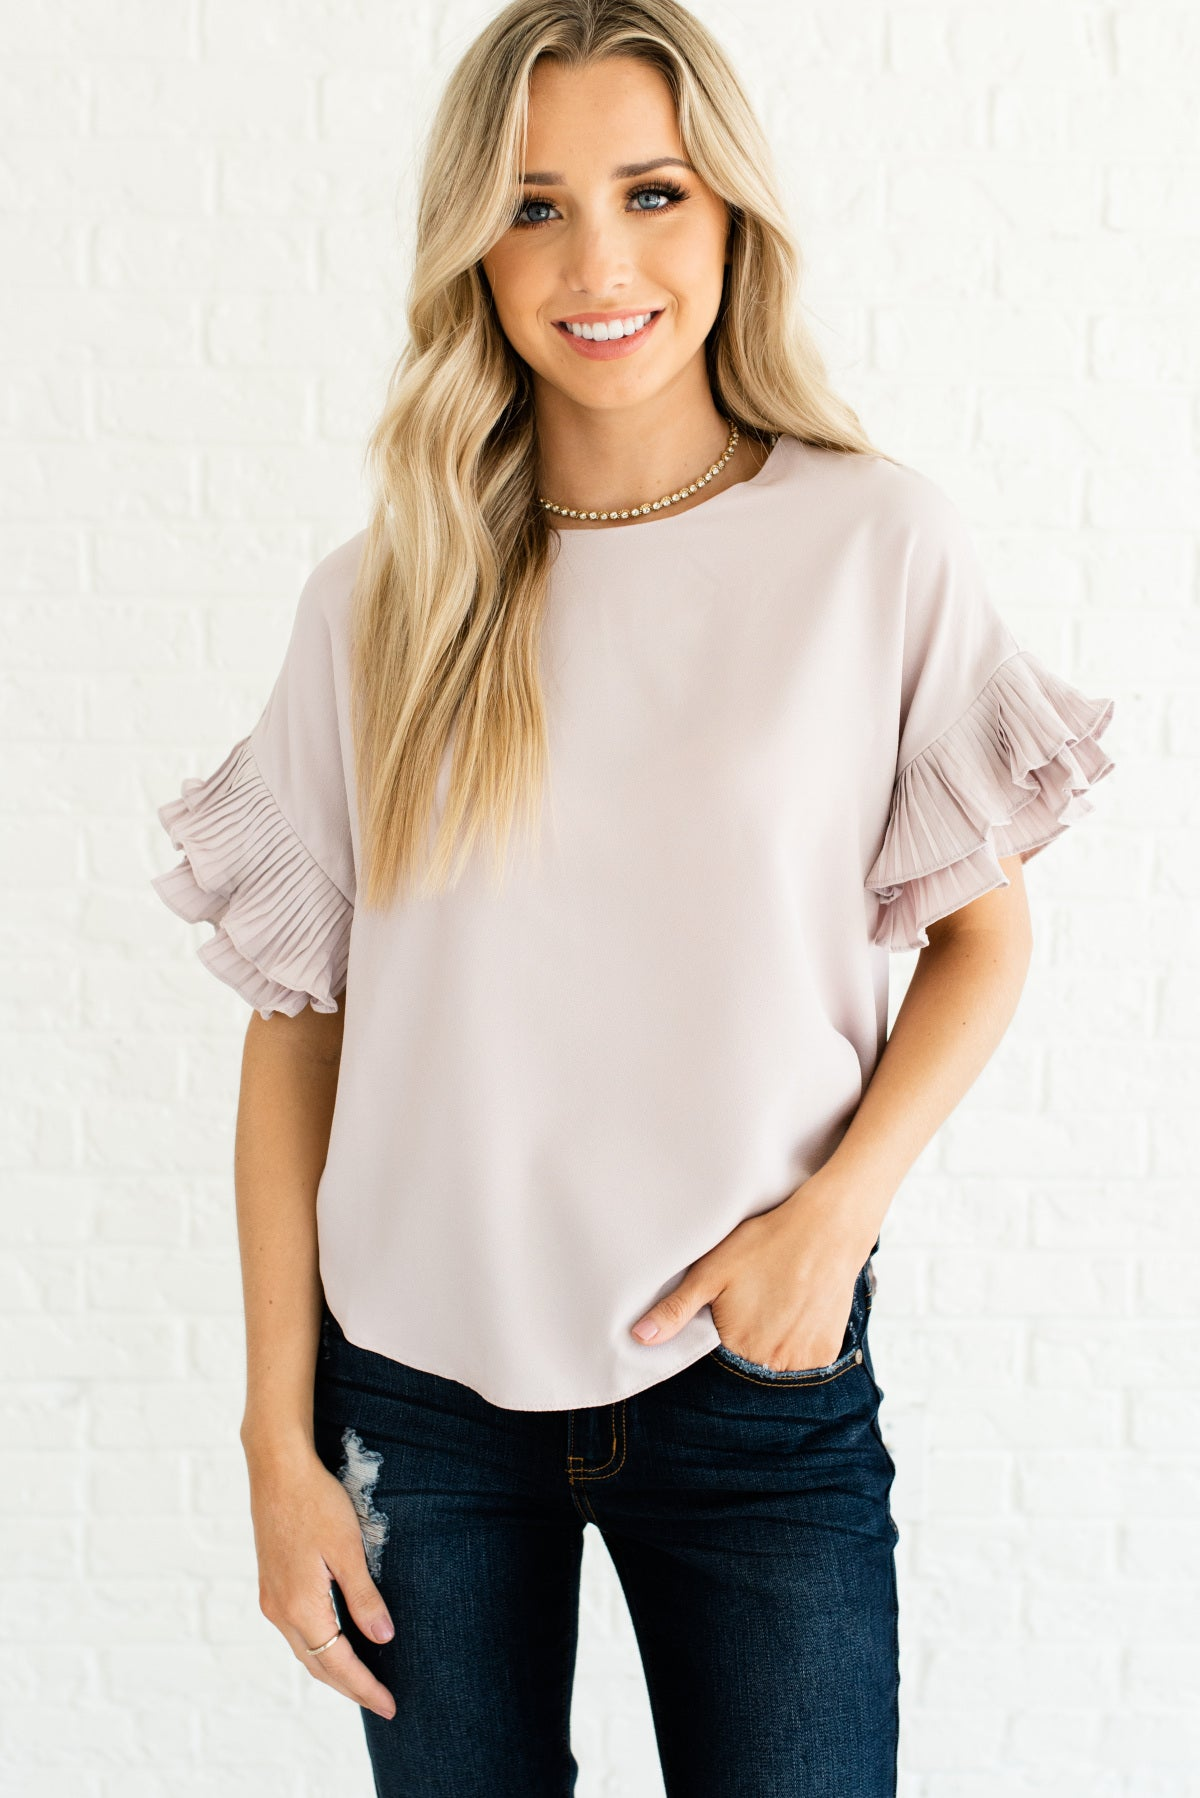 Light Blush Pink Ruffle Sleeve Boutique Tops for Women